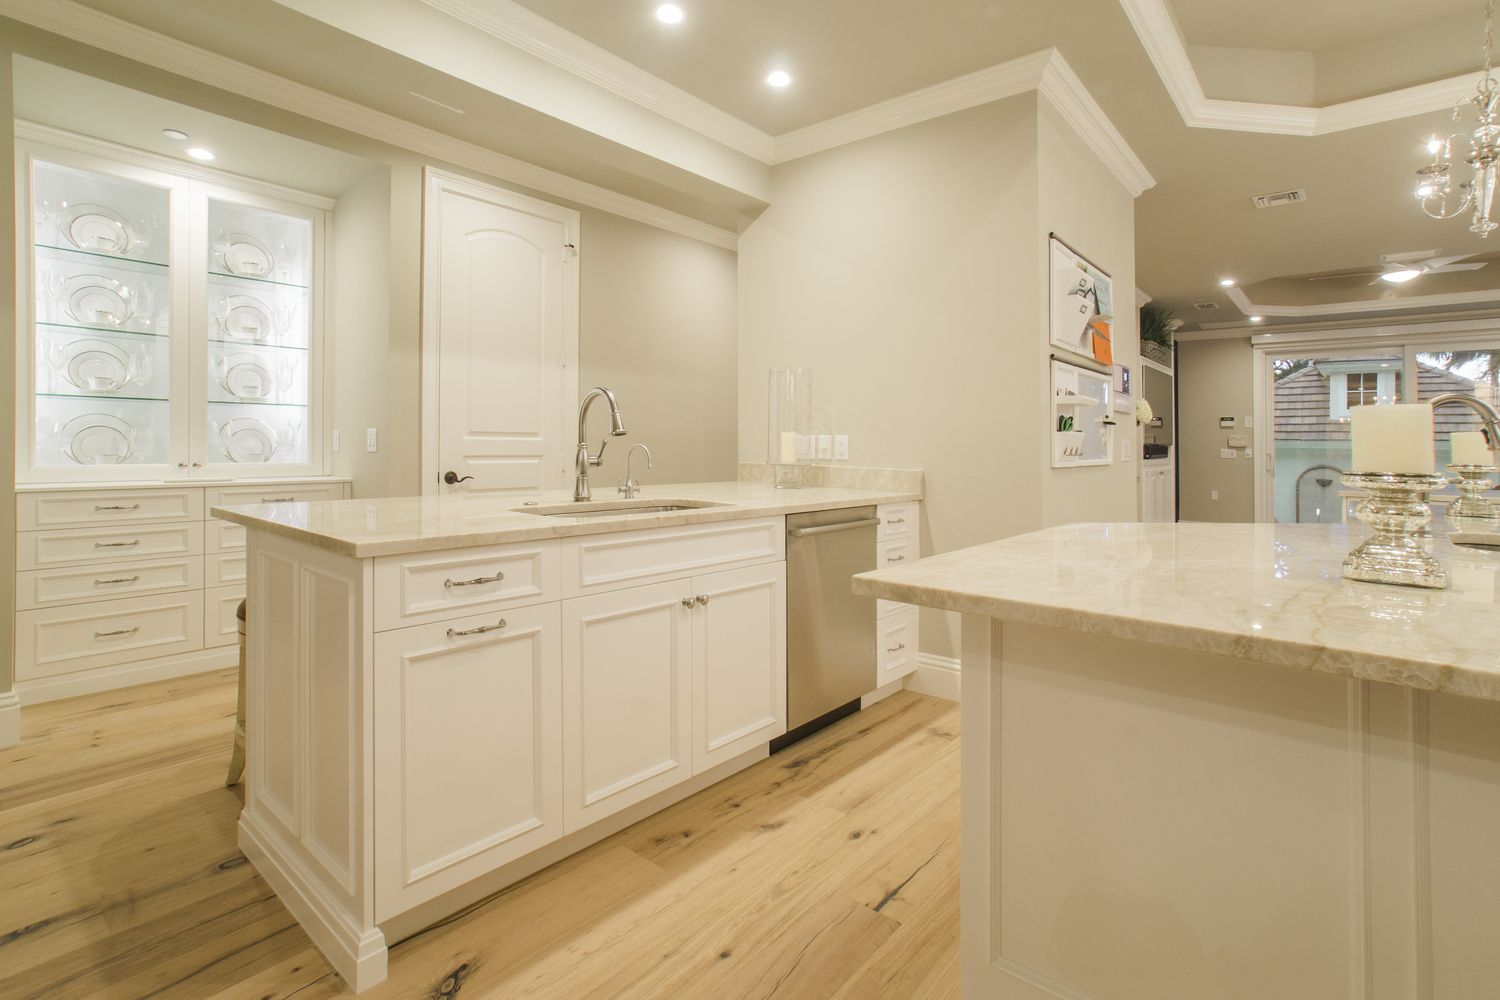 Specializing in high end residential remodeling and